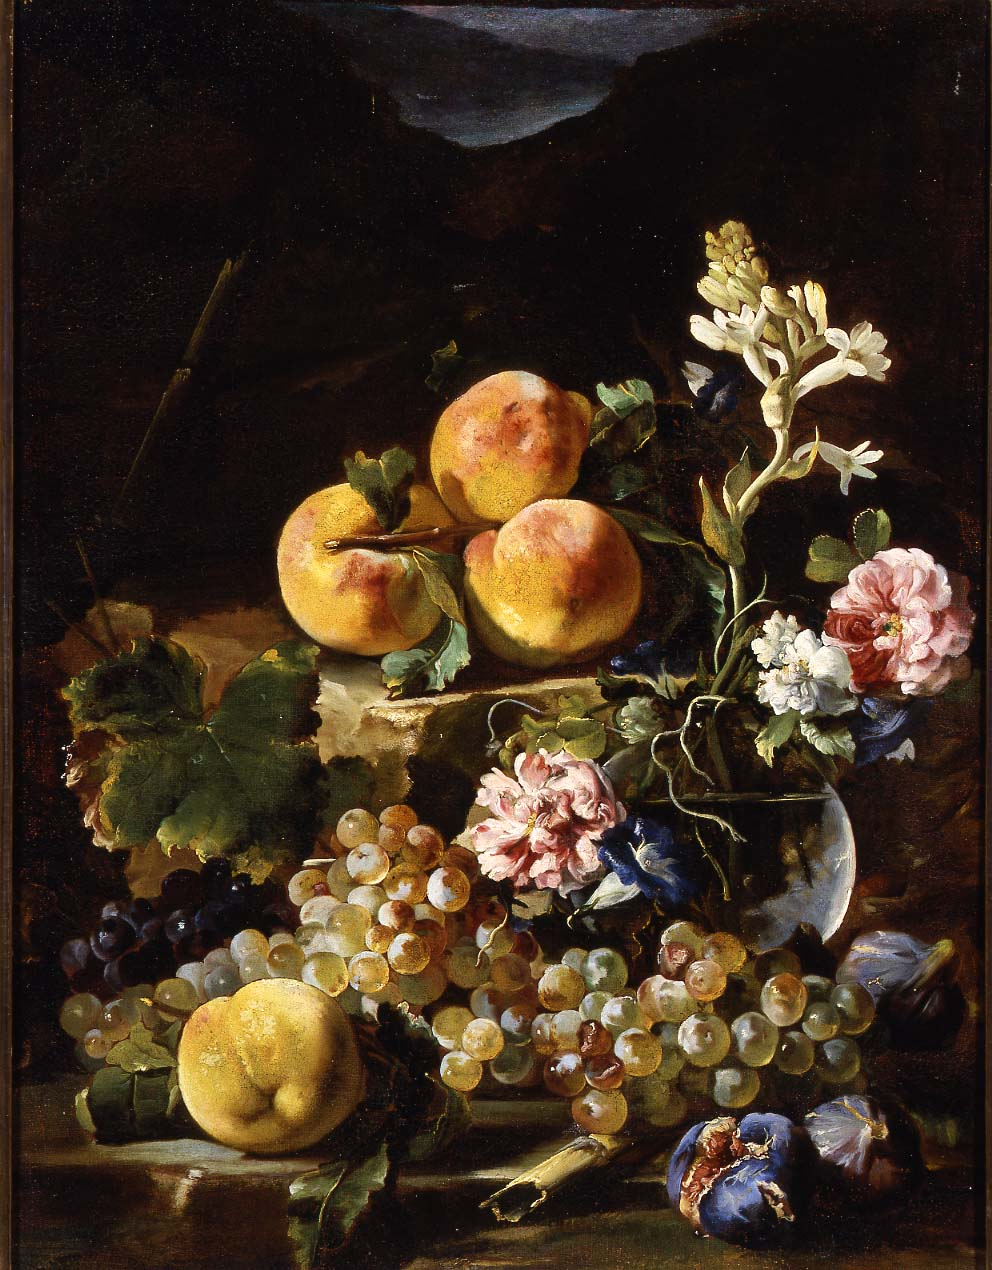 Light in the art and science of still life